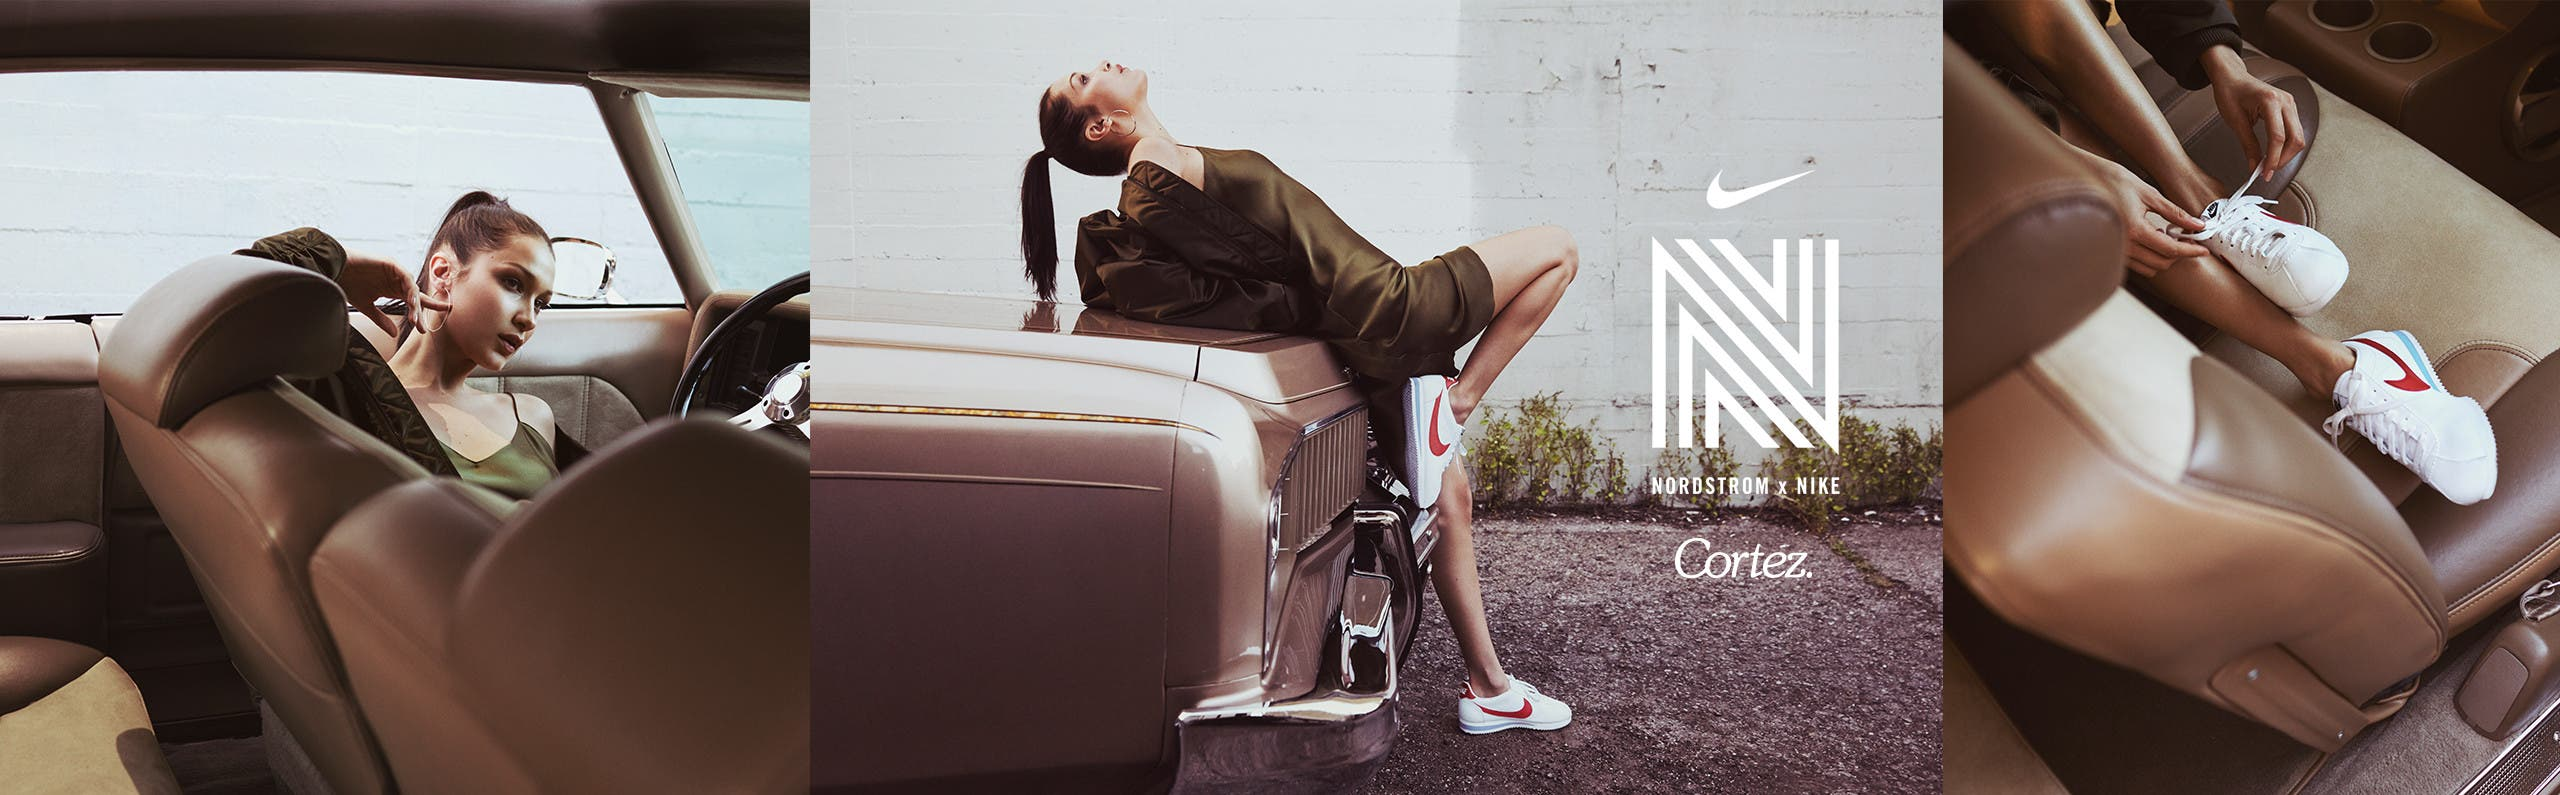 Nordstrom x Nike: all about Cortez!